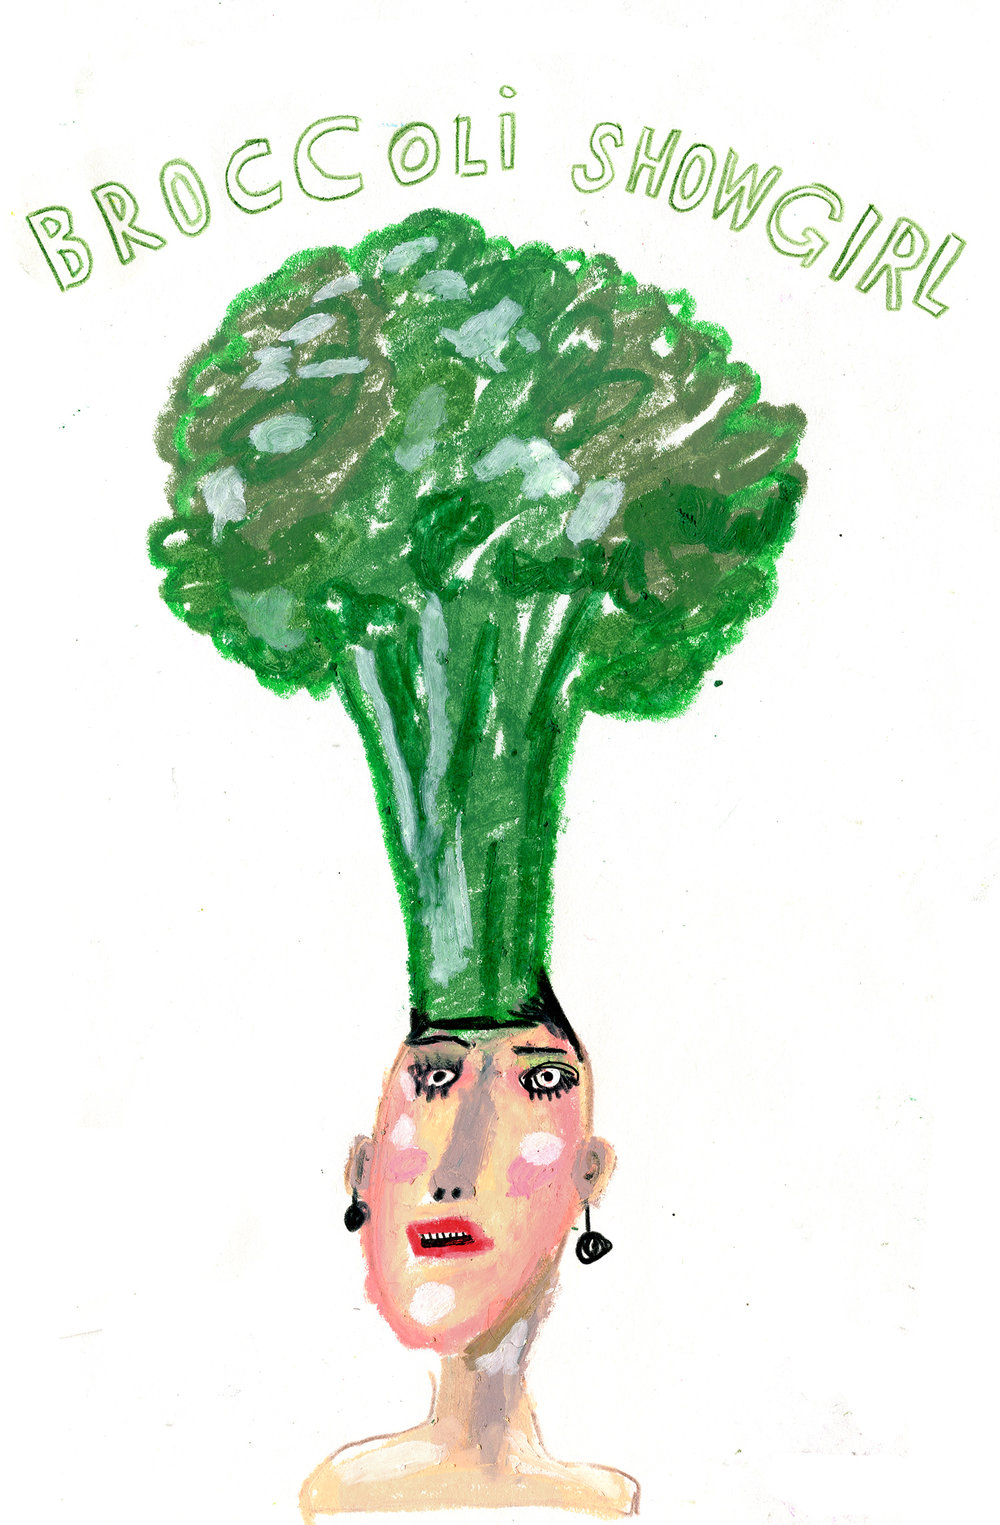 Broccoli Showgirl.jpg